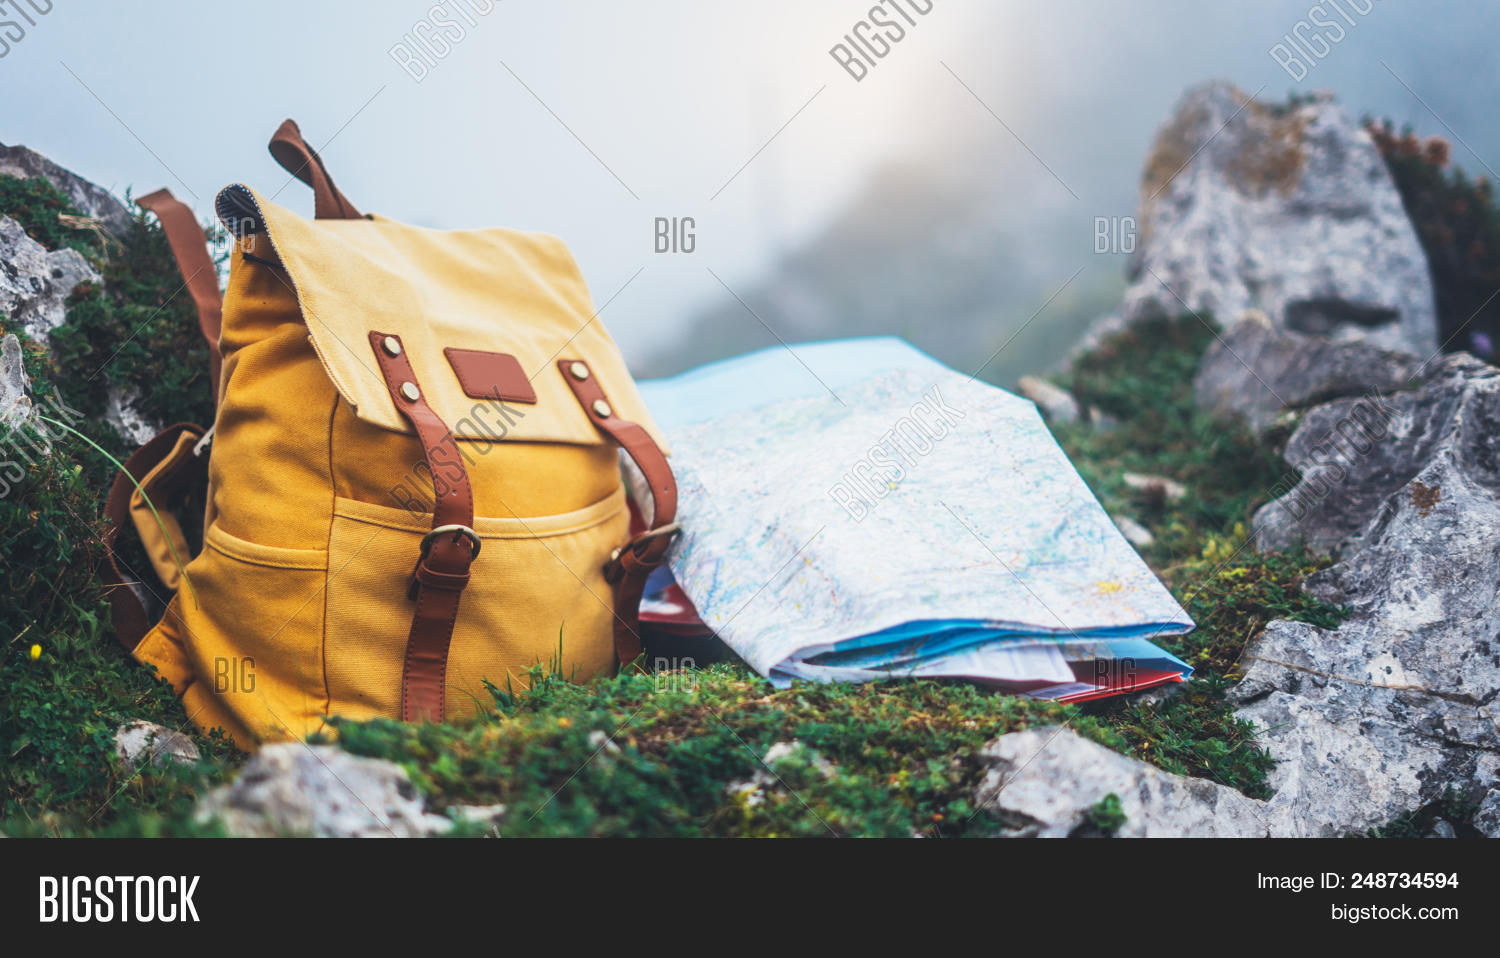 562cdb2826f8 Hipster Hiker Tourist Yellow Backpack And Map Europe On Background Green  Grass Nature In Mountain,